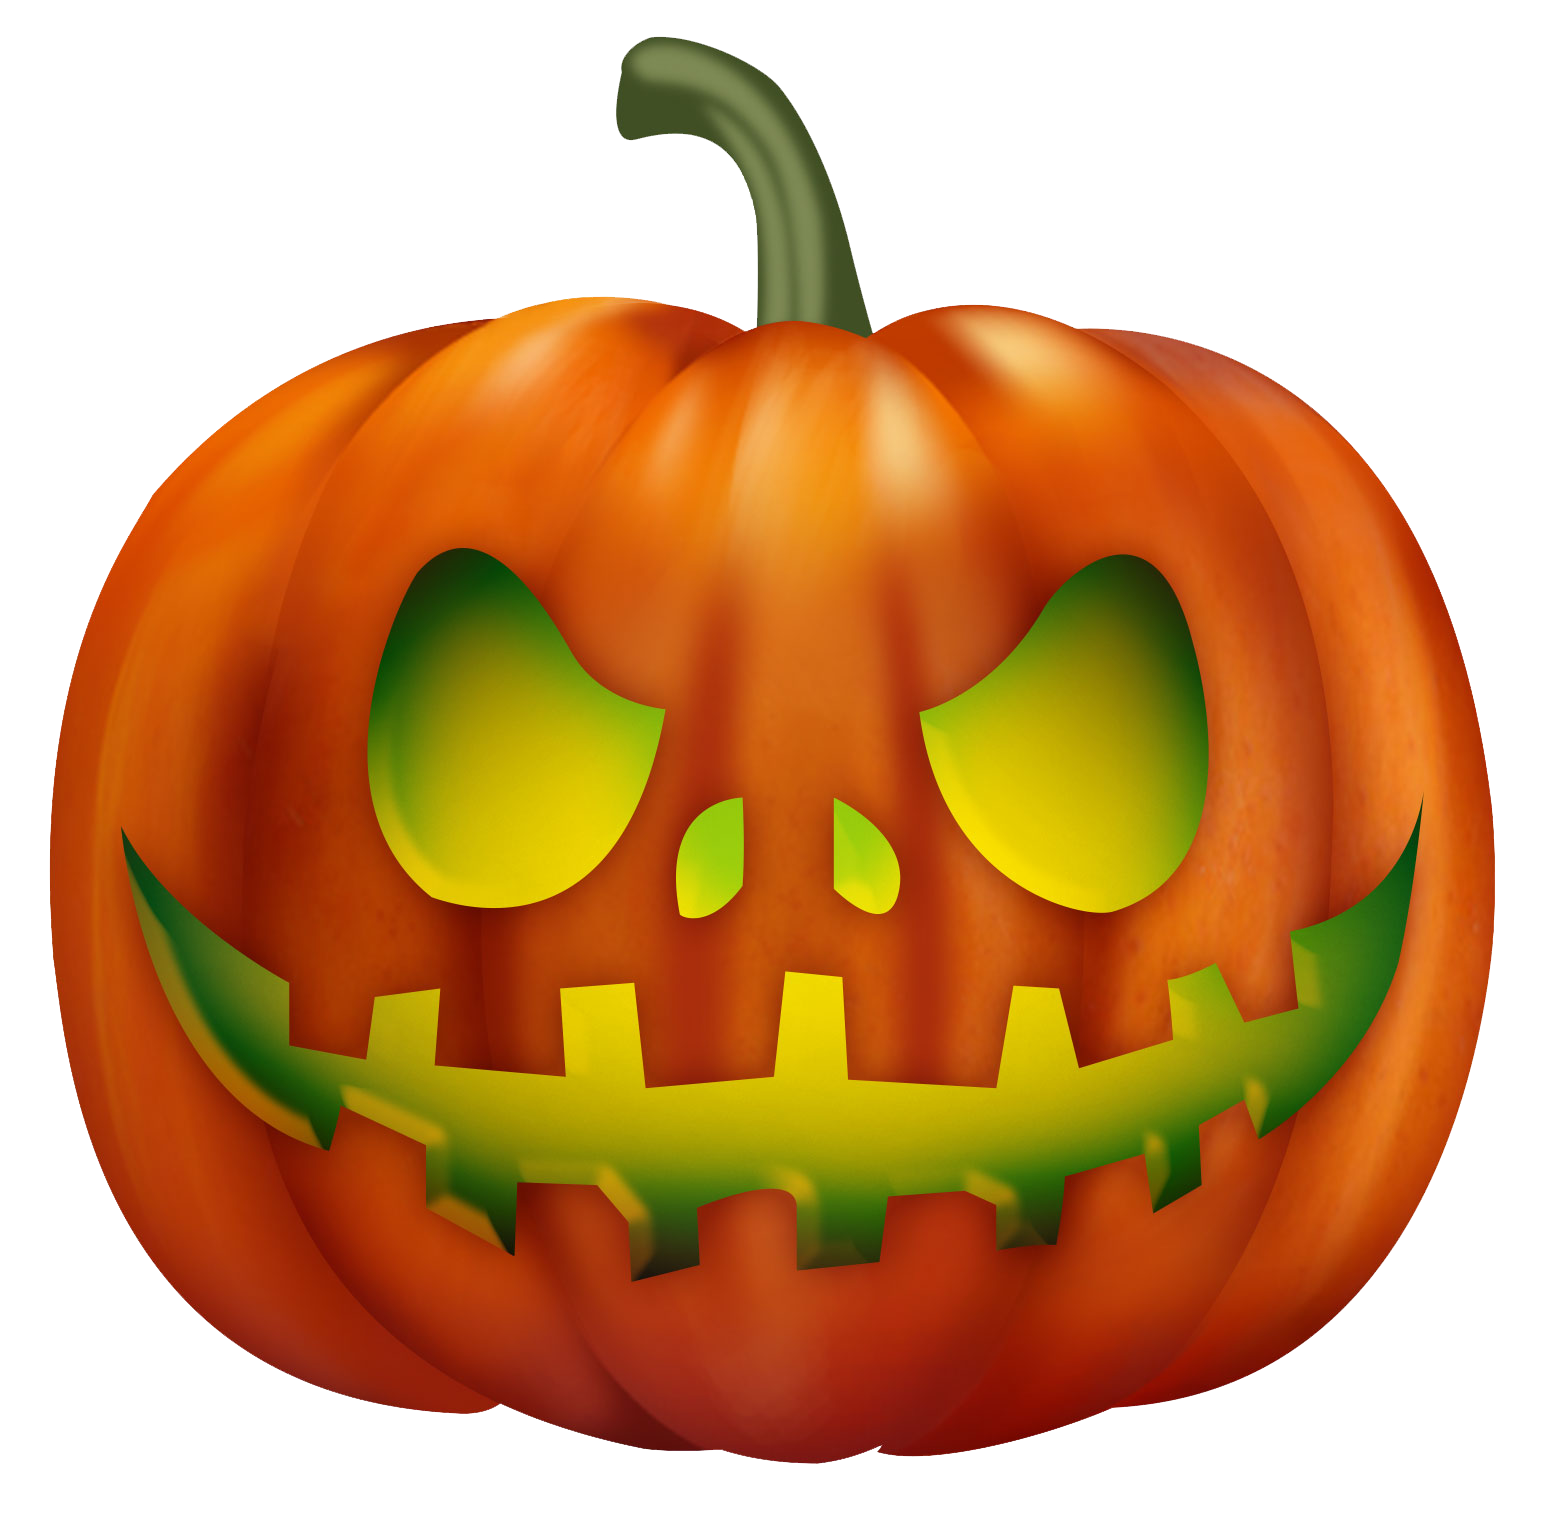 5,245 Free Heart Clip Art Images and Pictures of Hearts Free pumpkin pictures clip art